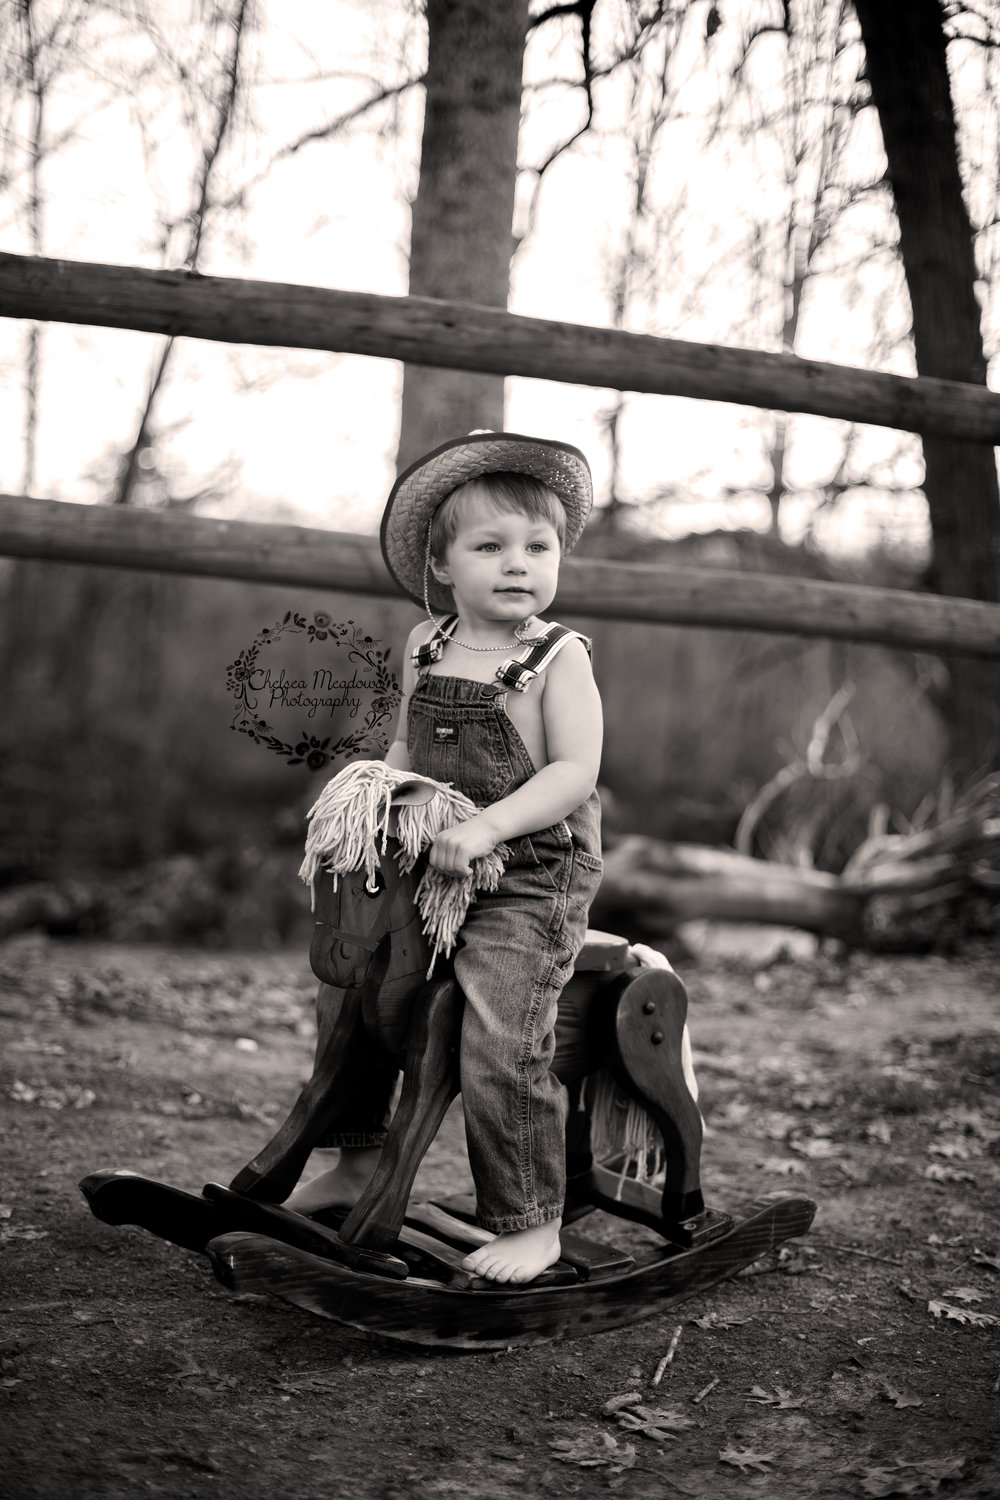 Grayson Cowboy Photos - Nashville family Photographer - Chelsea Meadows Photography (30)_edited-2.jpg